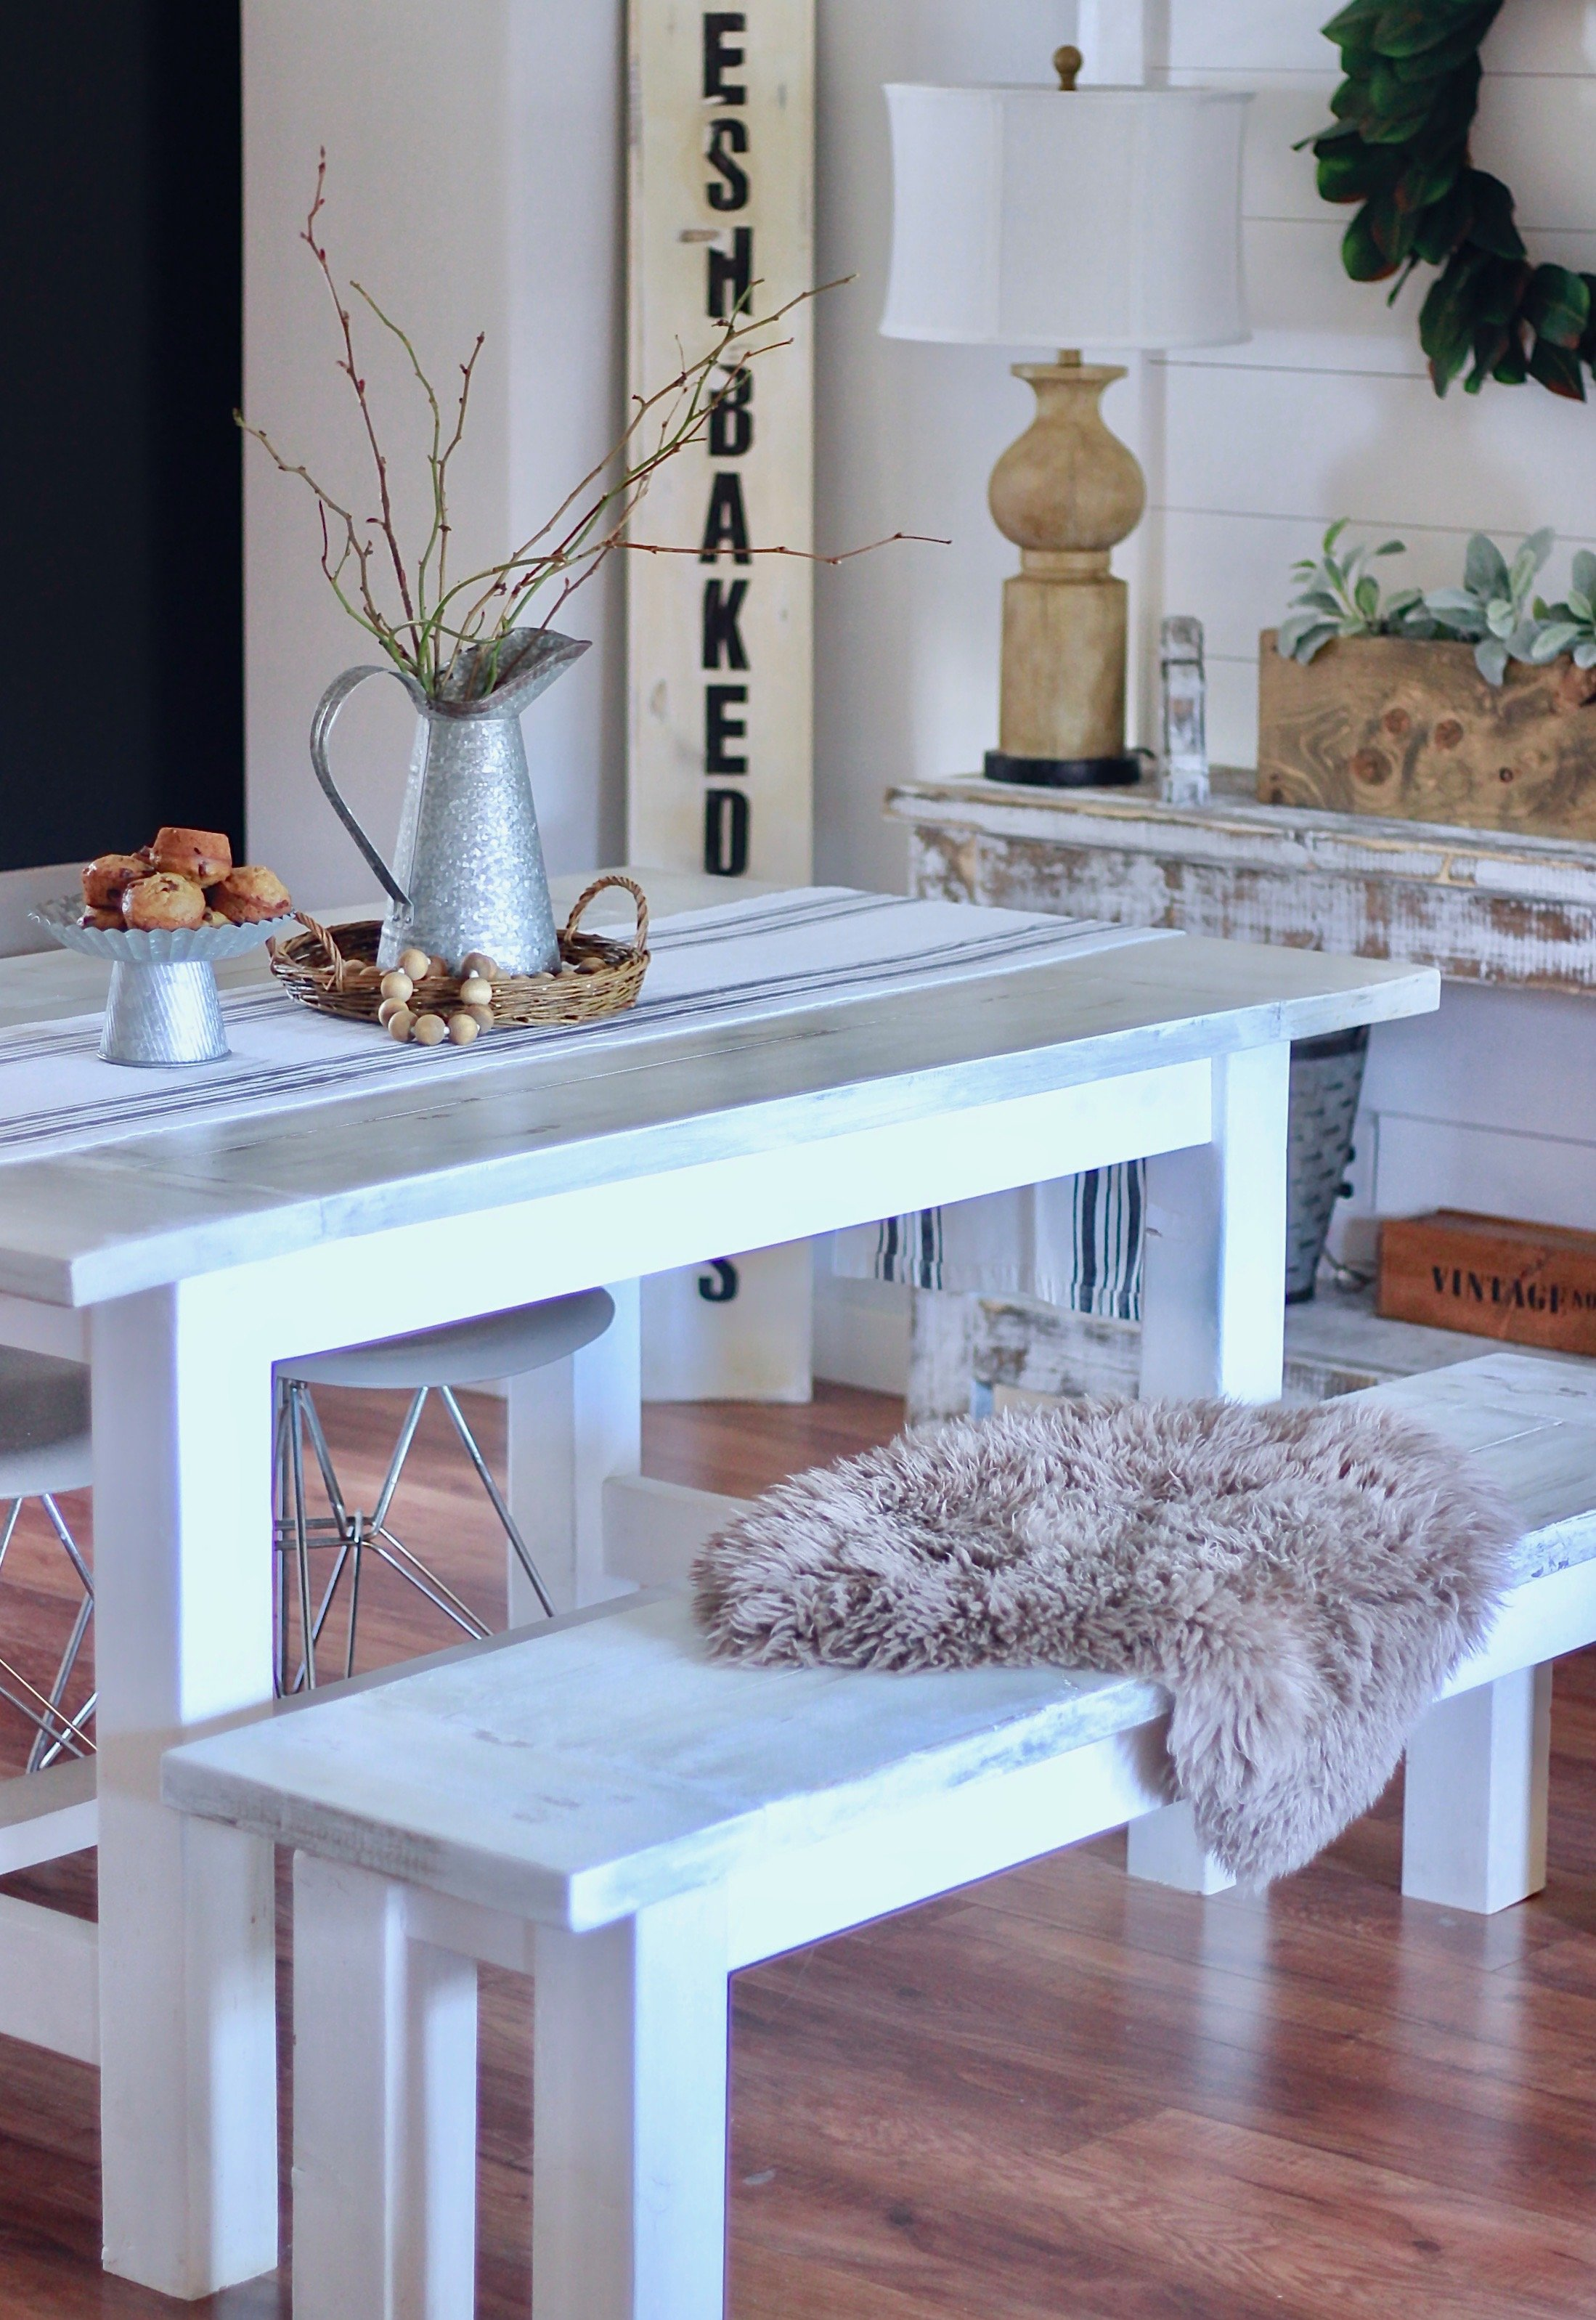 Our Farmhouse White Distressed Table & How To Achieve This Look www.whitepicketfarmhouse.com